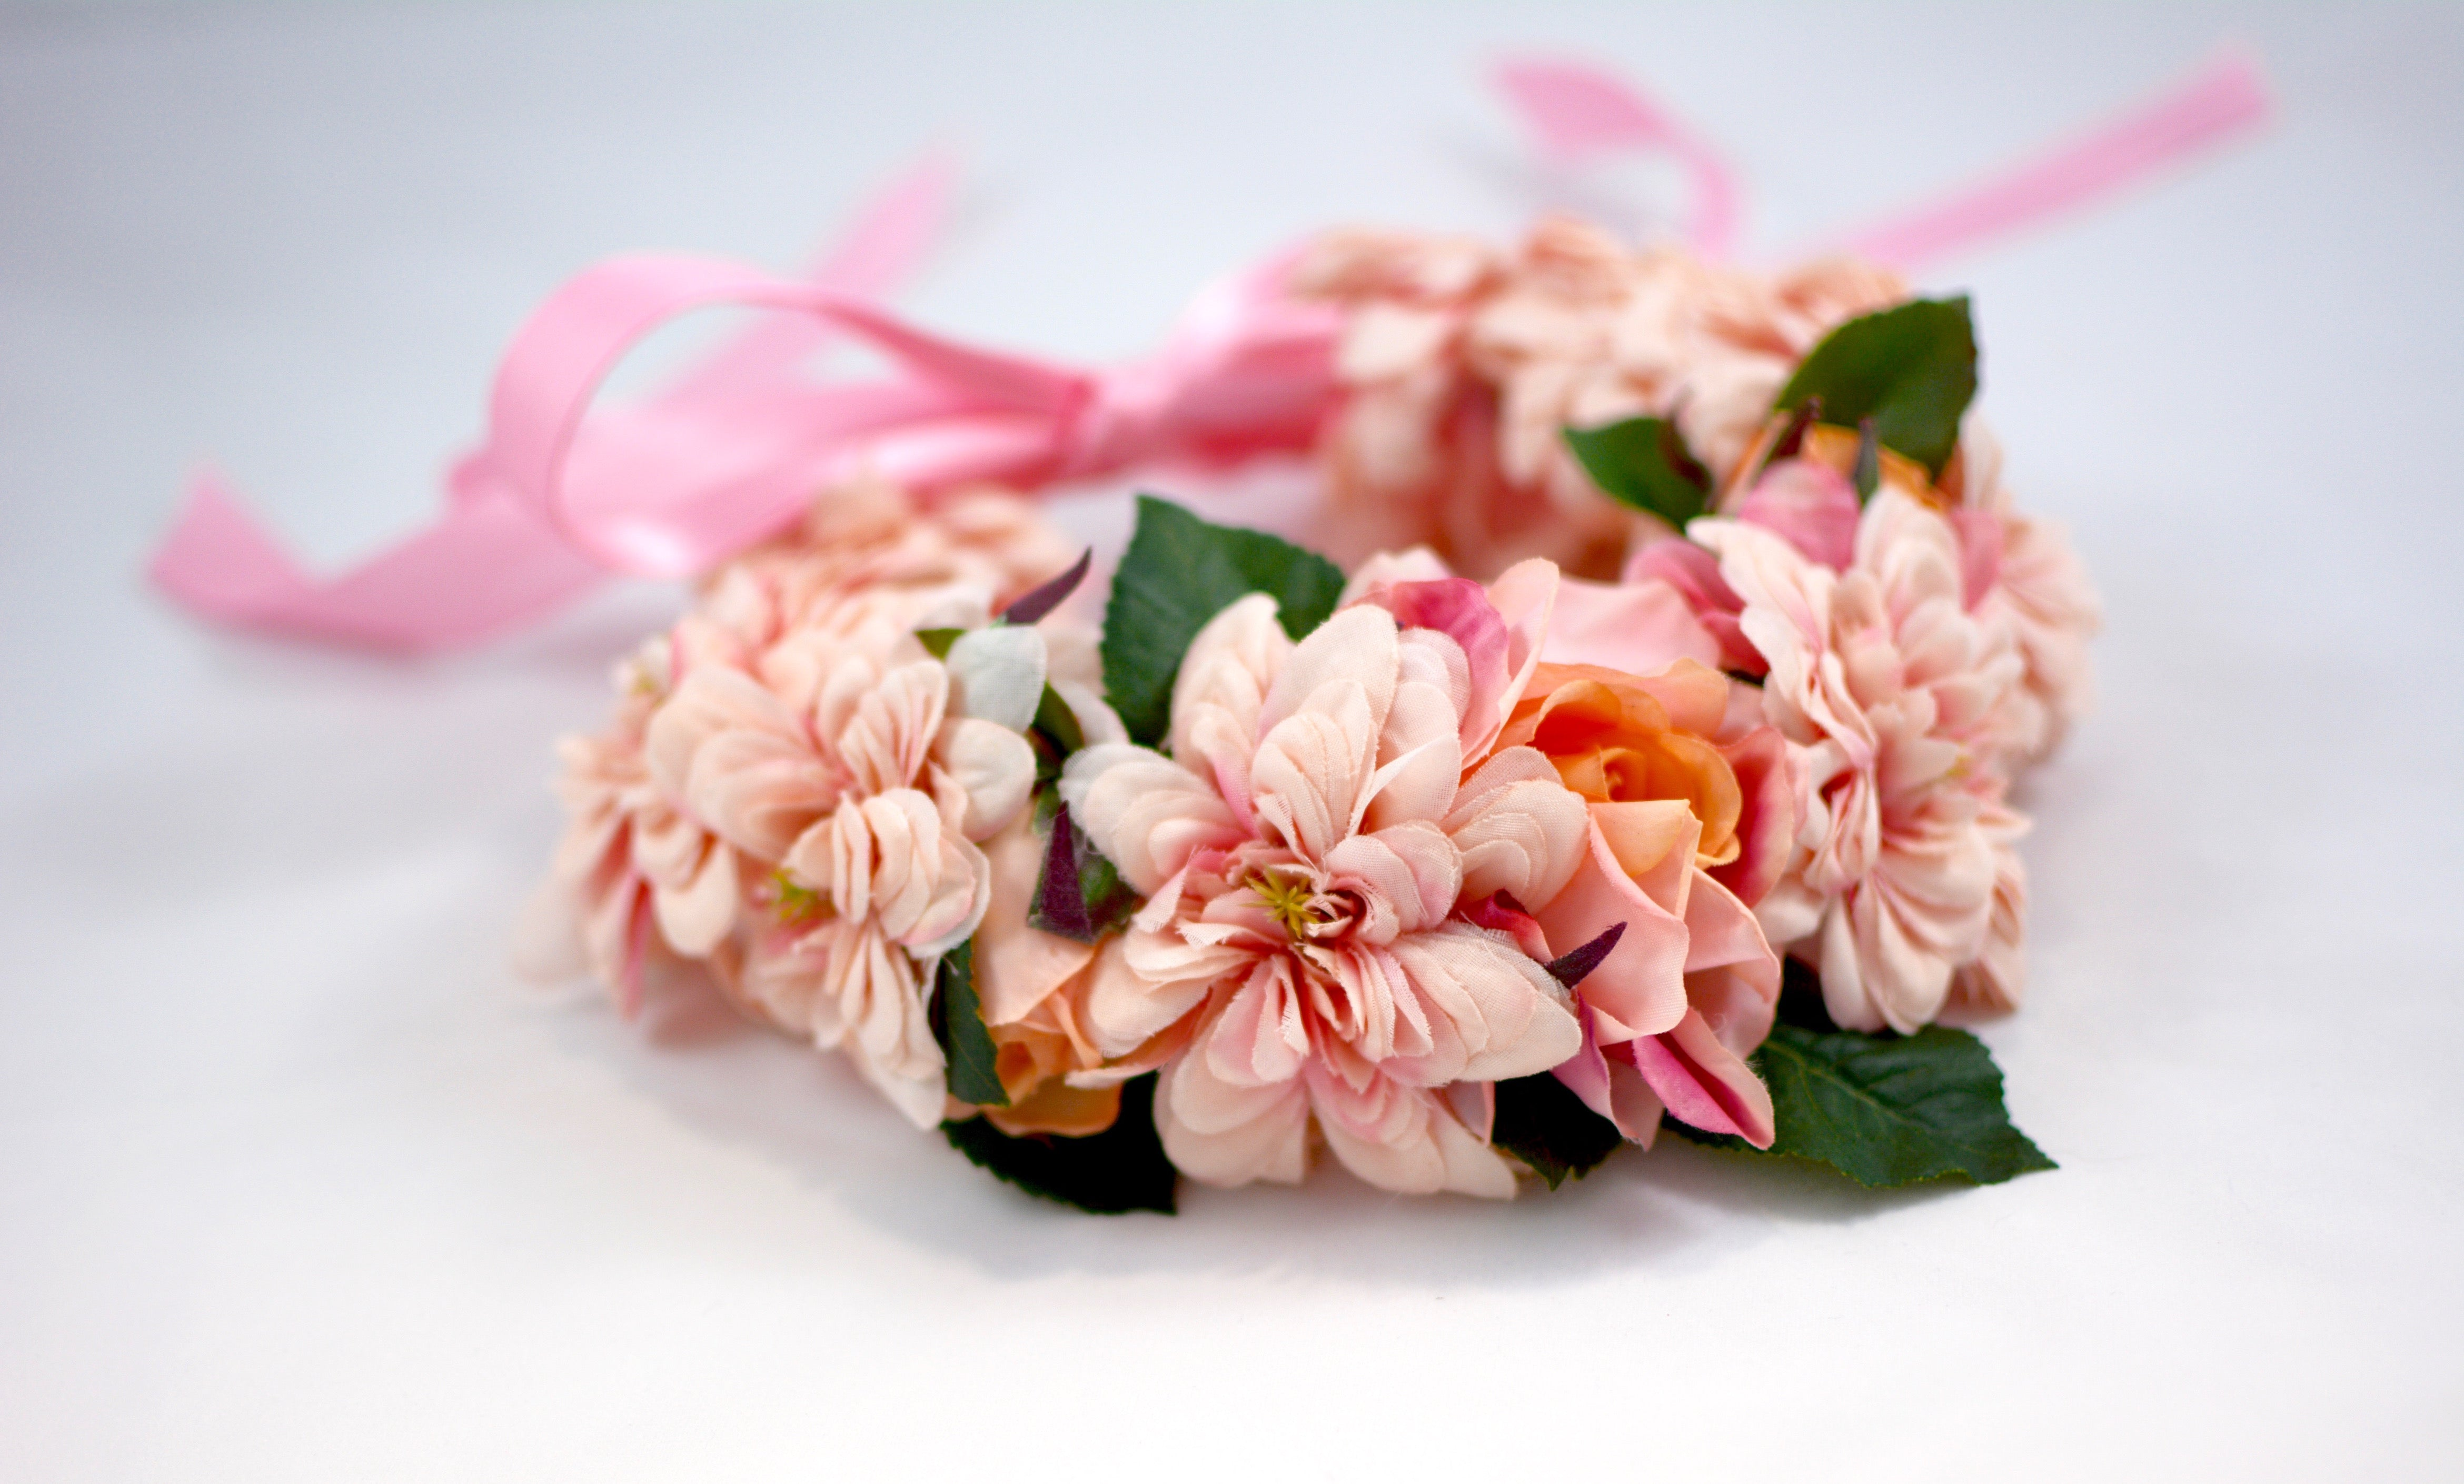 Custom flower crown the moxie collection custom flower crown the moxie collection izmirmasajfo